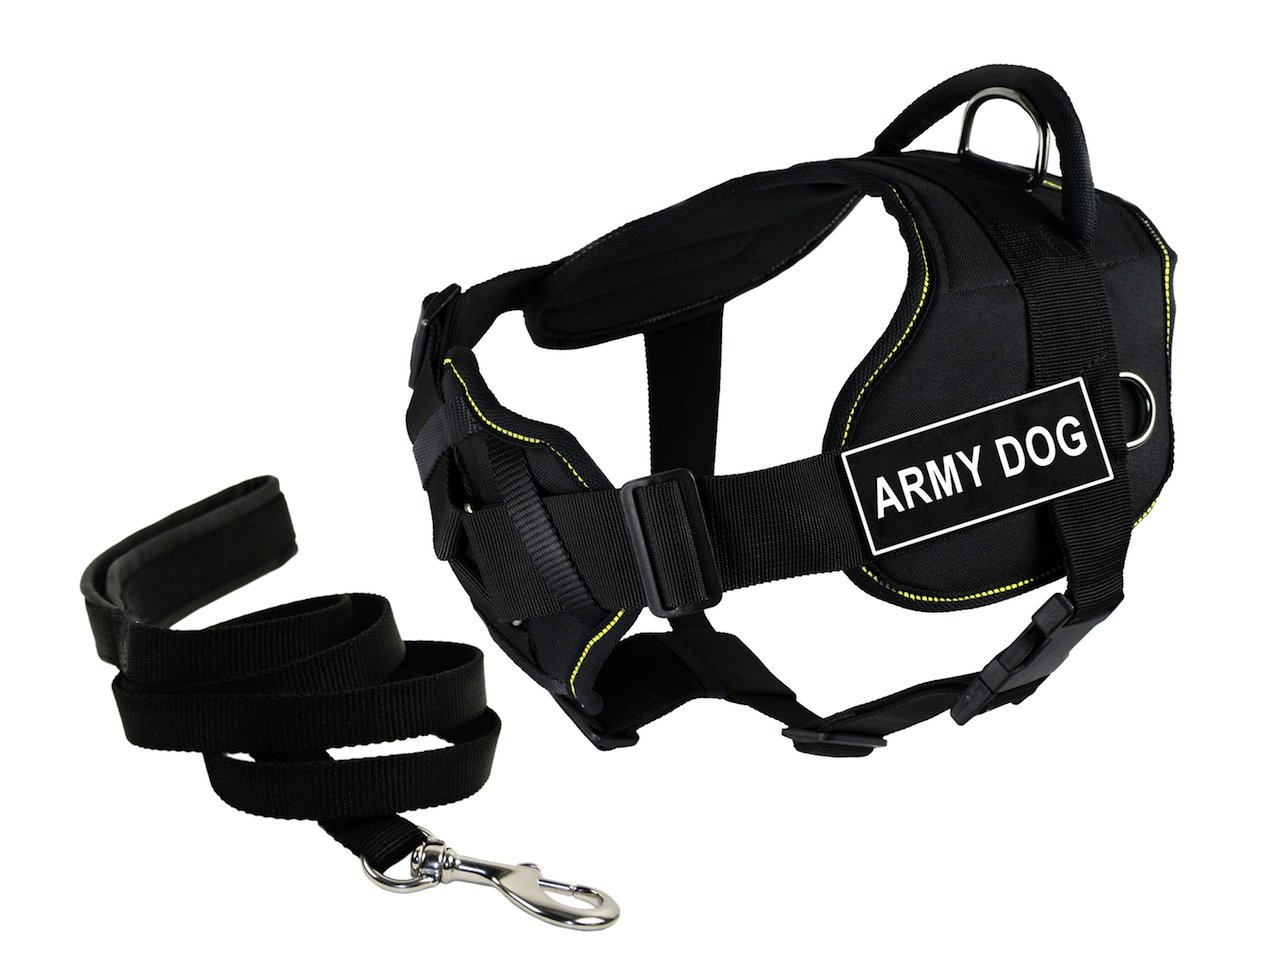 Dean & Tyler DT Fun Petto Supporto Army Dog Harness, Piccolo, con 1,8 m Padded Puppy guinzaglio.